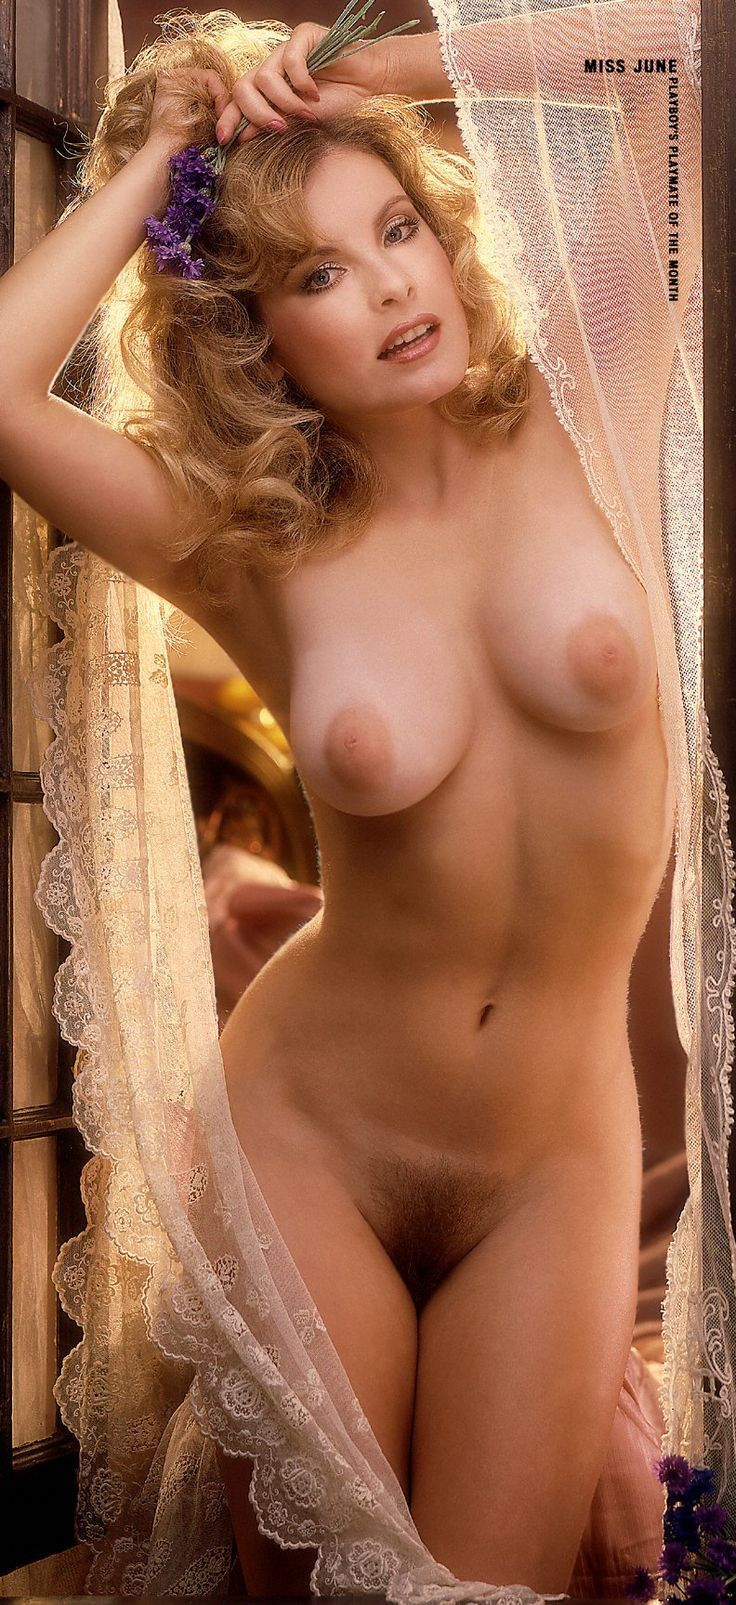 35 best classic playboy centerfolds images on pinterest | playboy